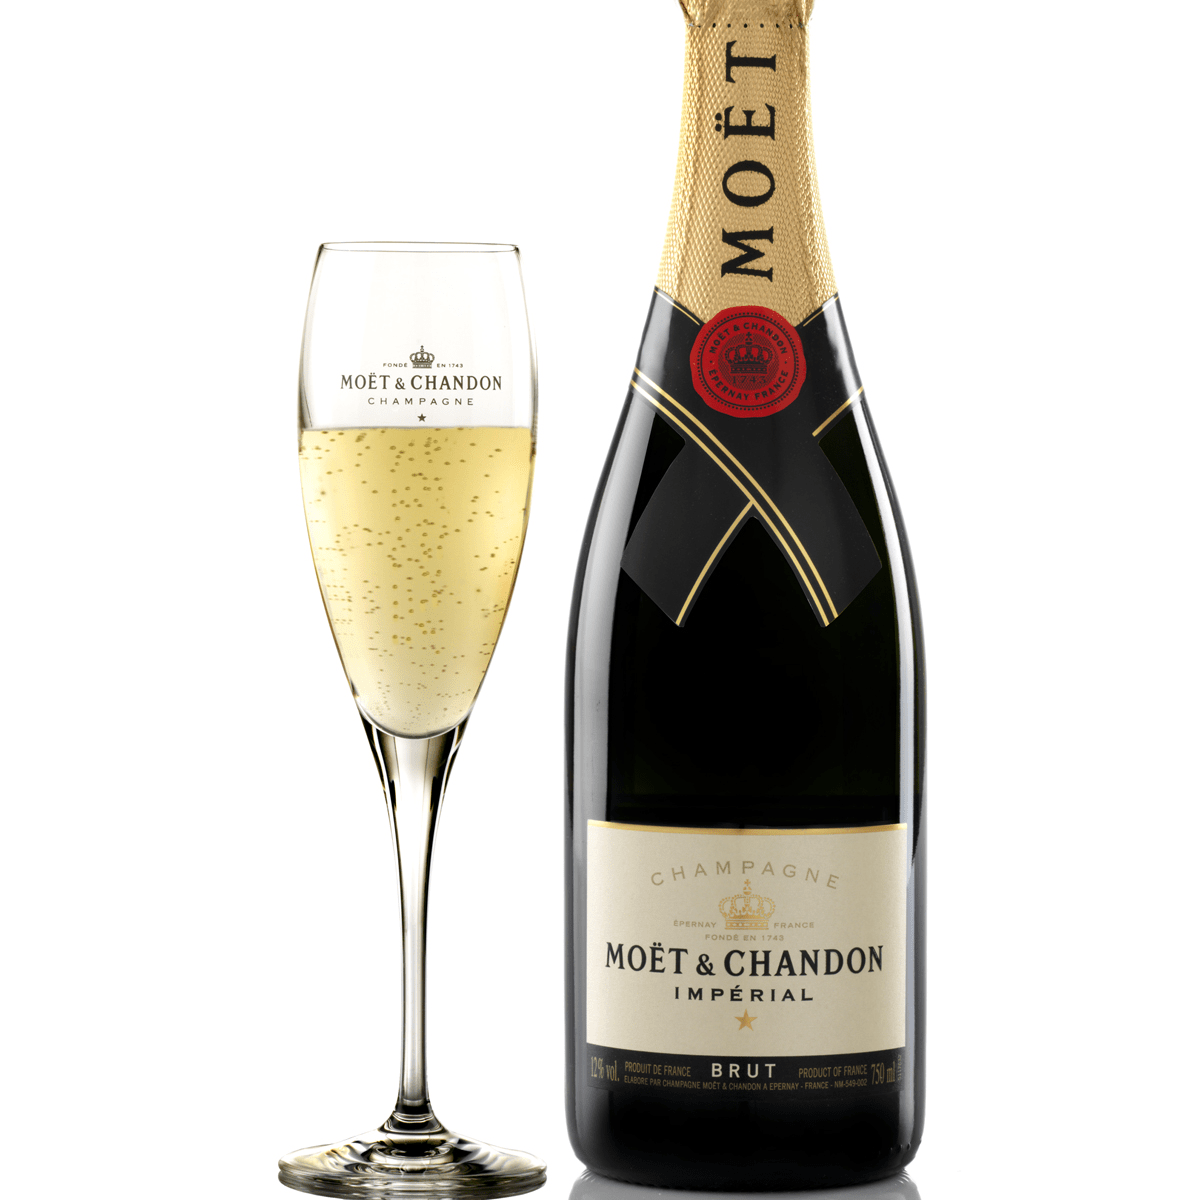 Flute A Champagne Original No Flutes Please Insider S Guide To Champagne Sipping At Its